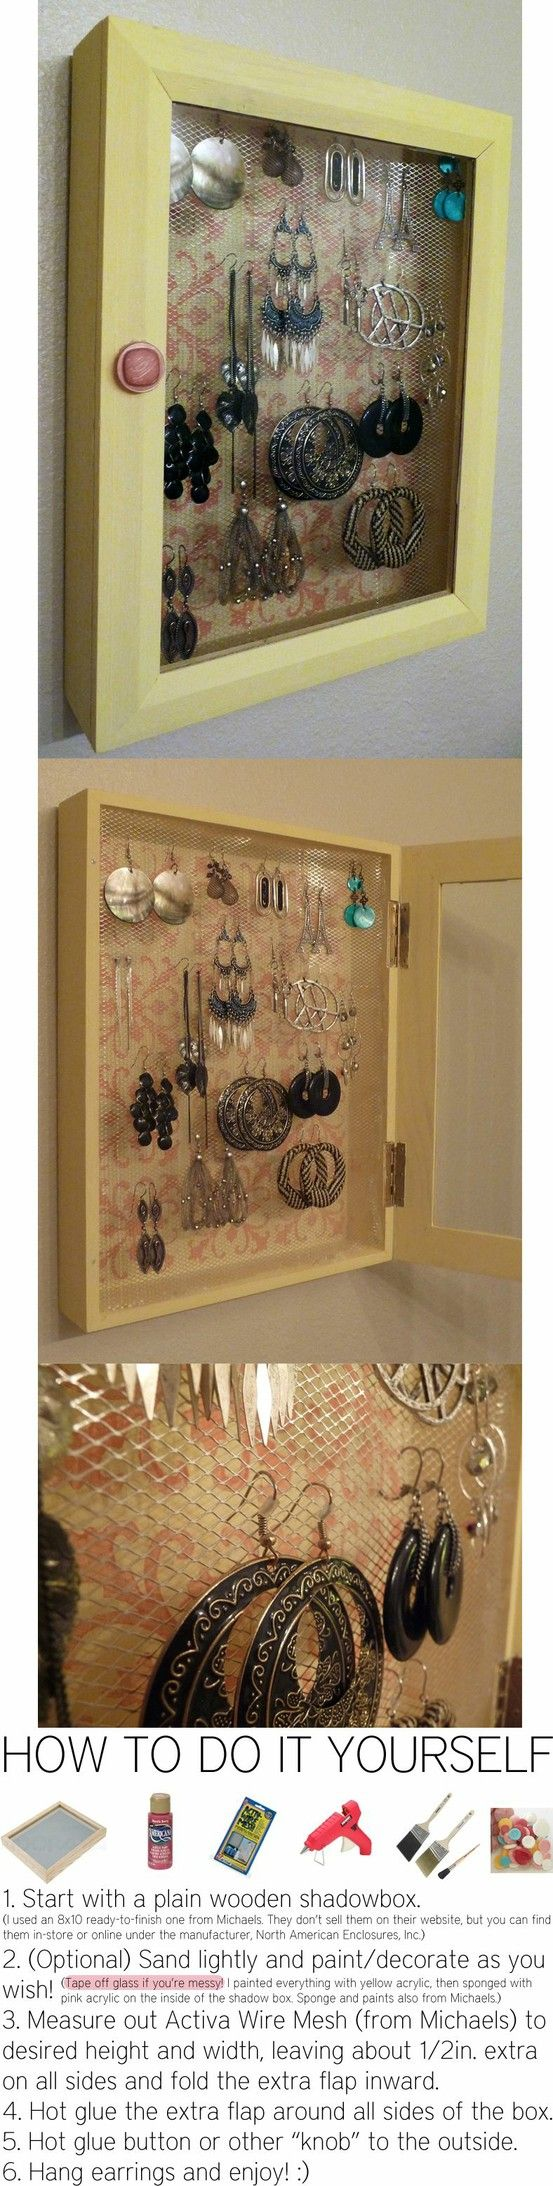 186 best diy jewelry displays images on pinterest jewelry displays 186 best diy jewelry displays images on pinterest jewelry displays bricolage and jewelry holder solutioingenieria Images